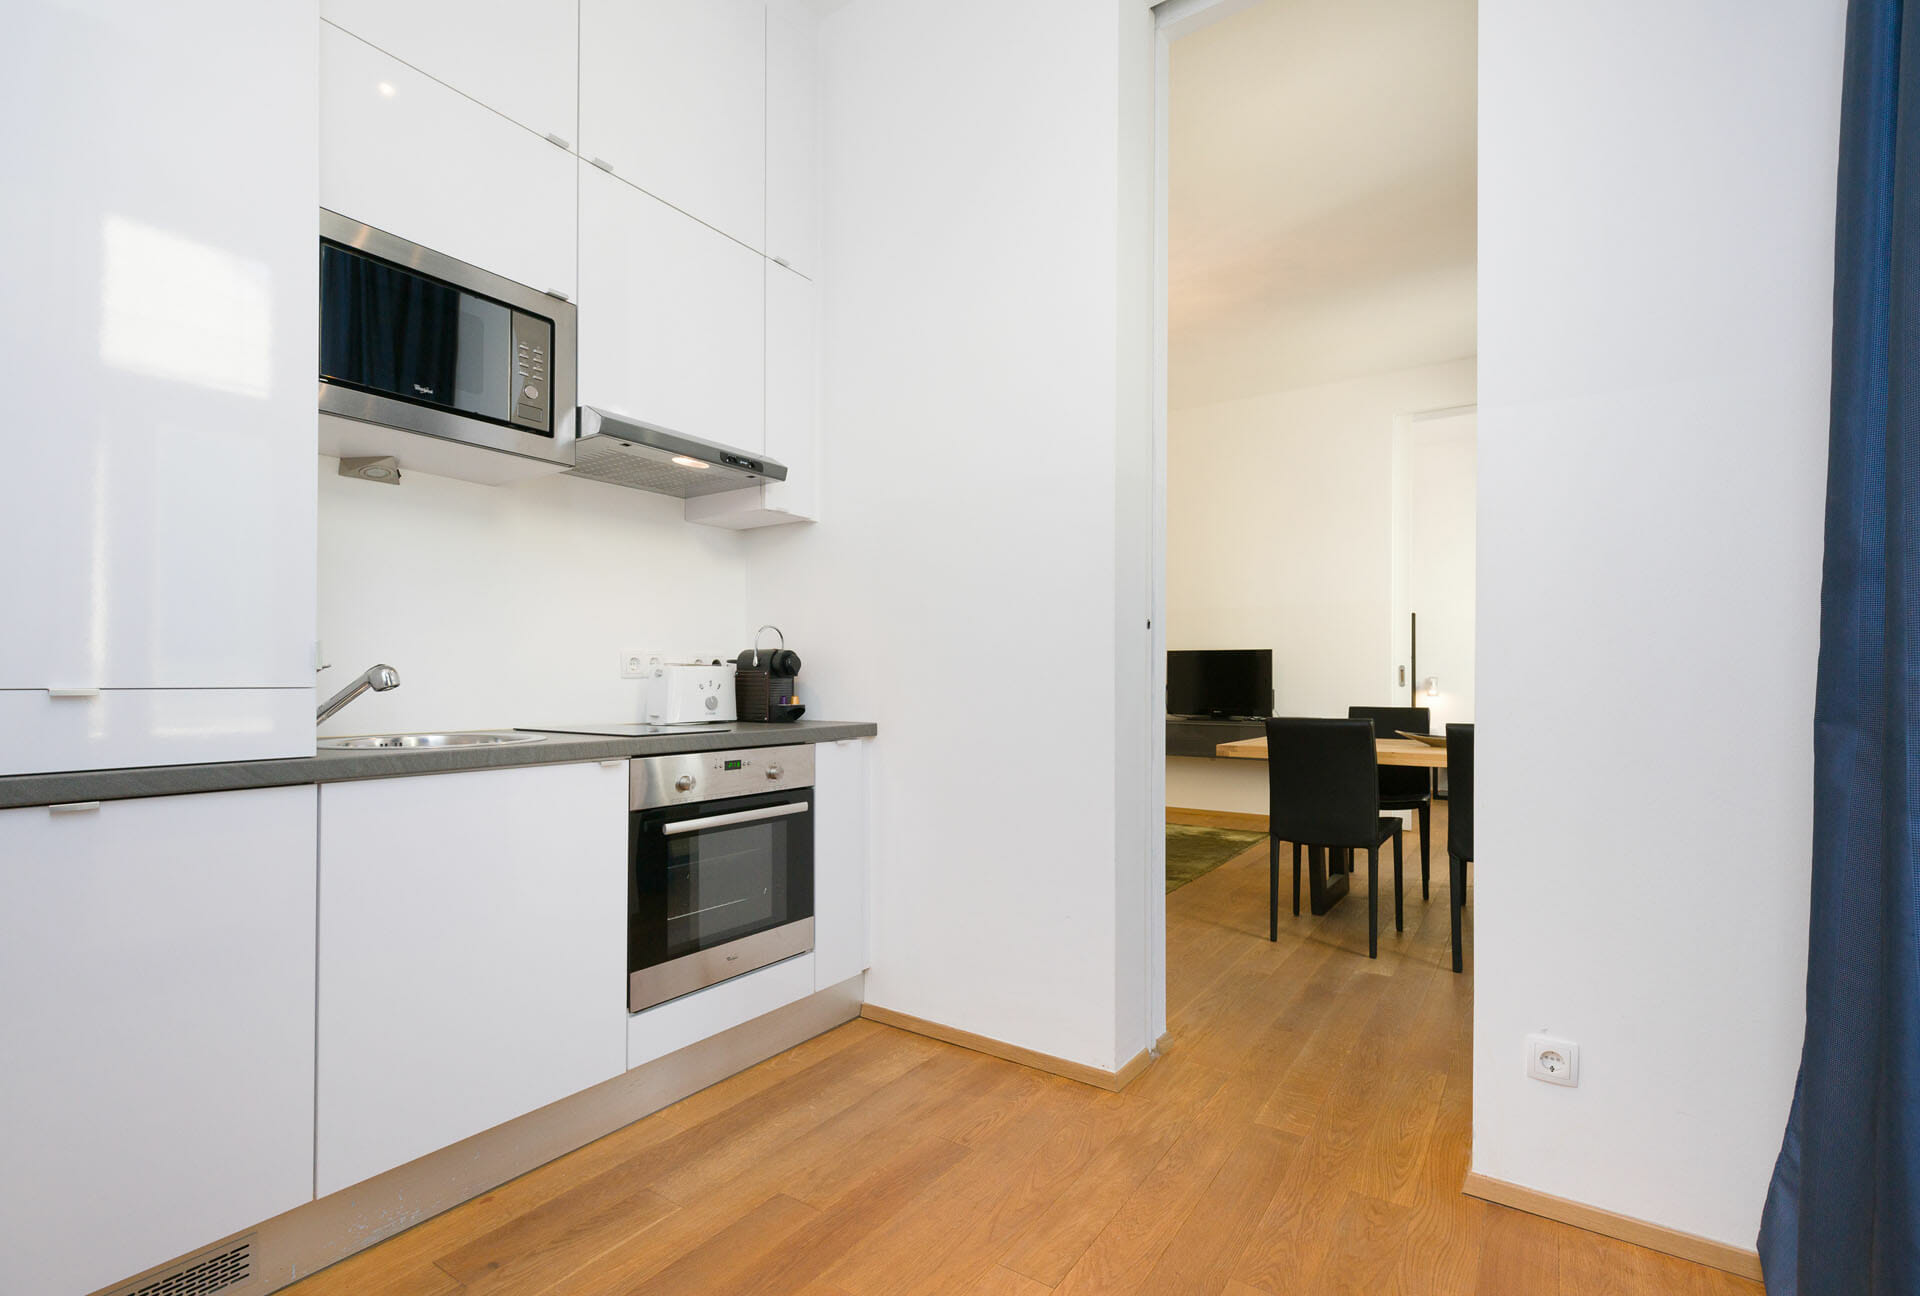 Prestige Apartments. Luxury Apartment in Vienna with premium furniture. Alser Strasse 14. Apartments size in m²: 49 District: 1090 Alsergrund Bedroom: 1